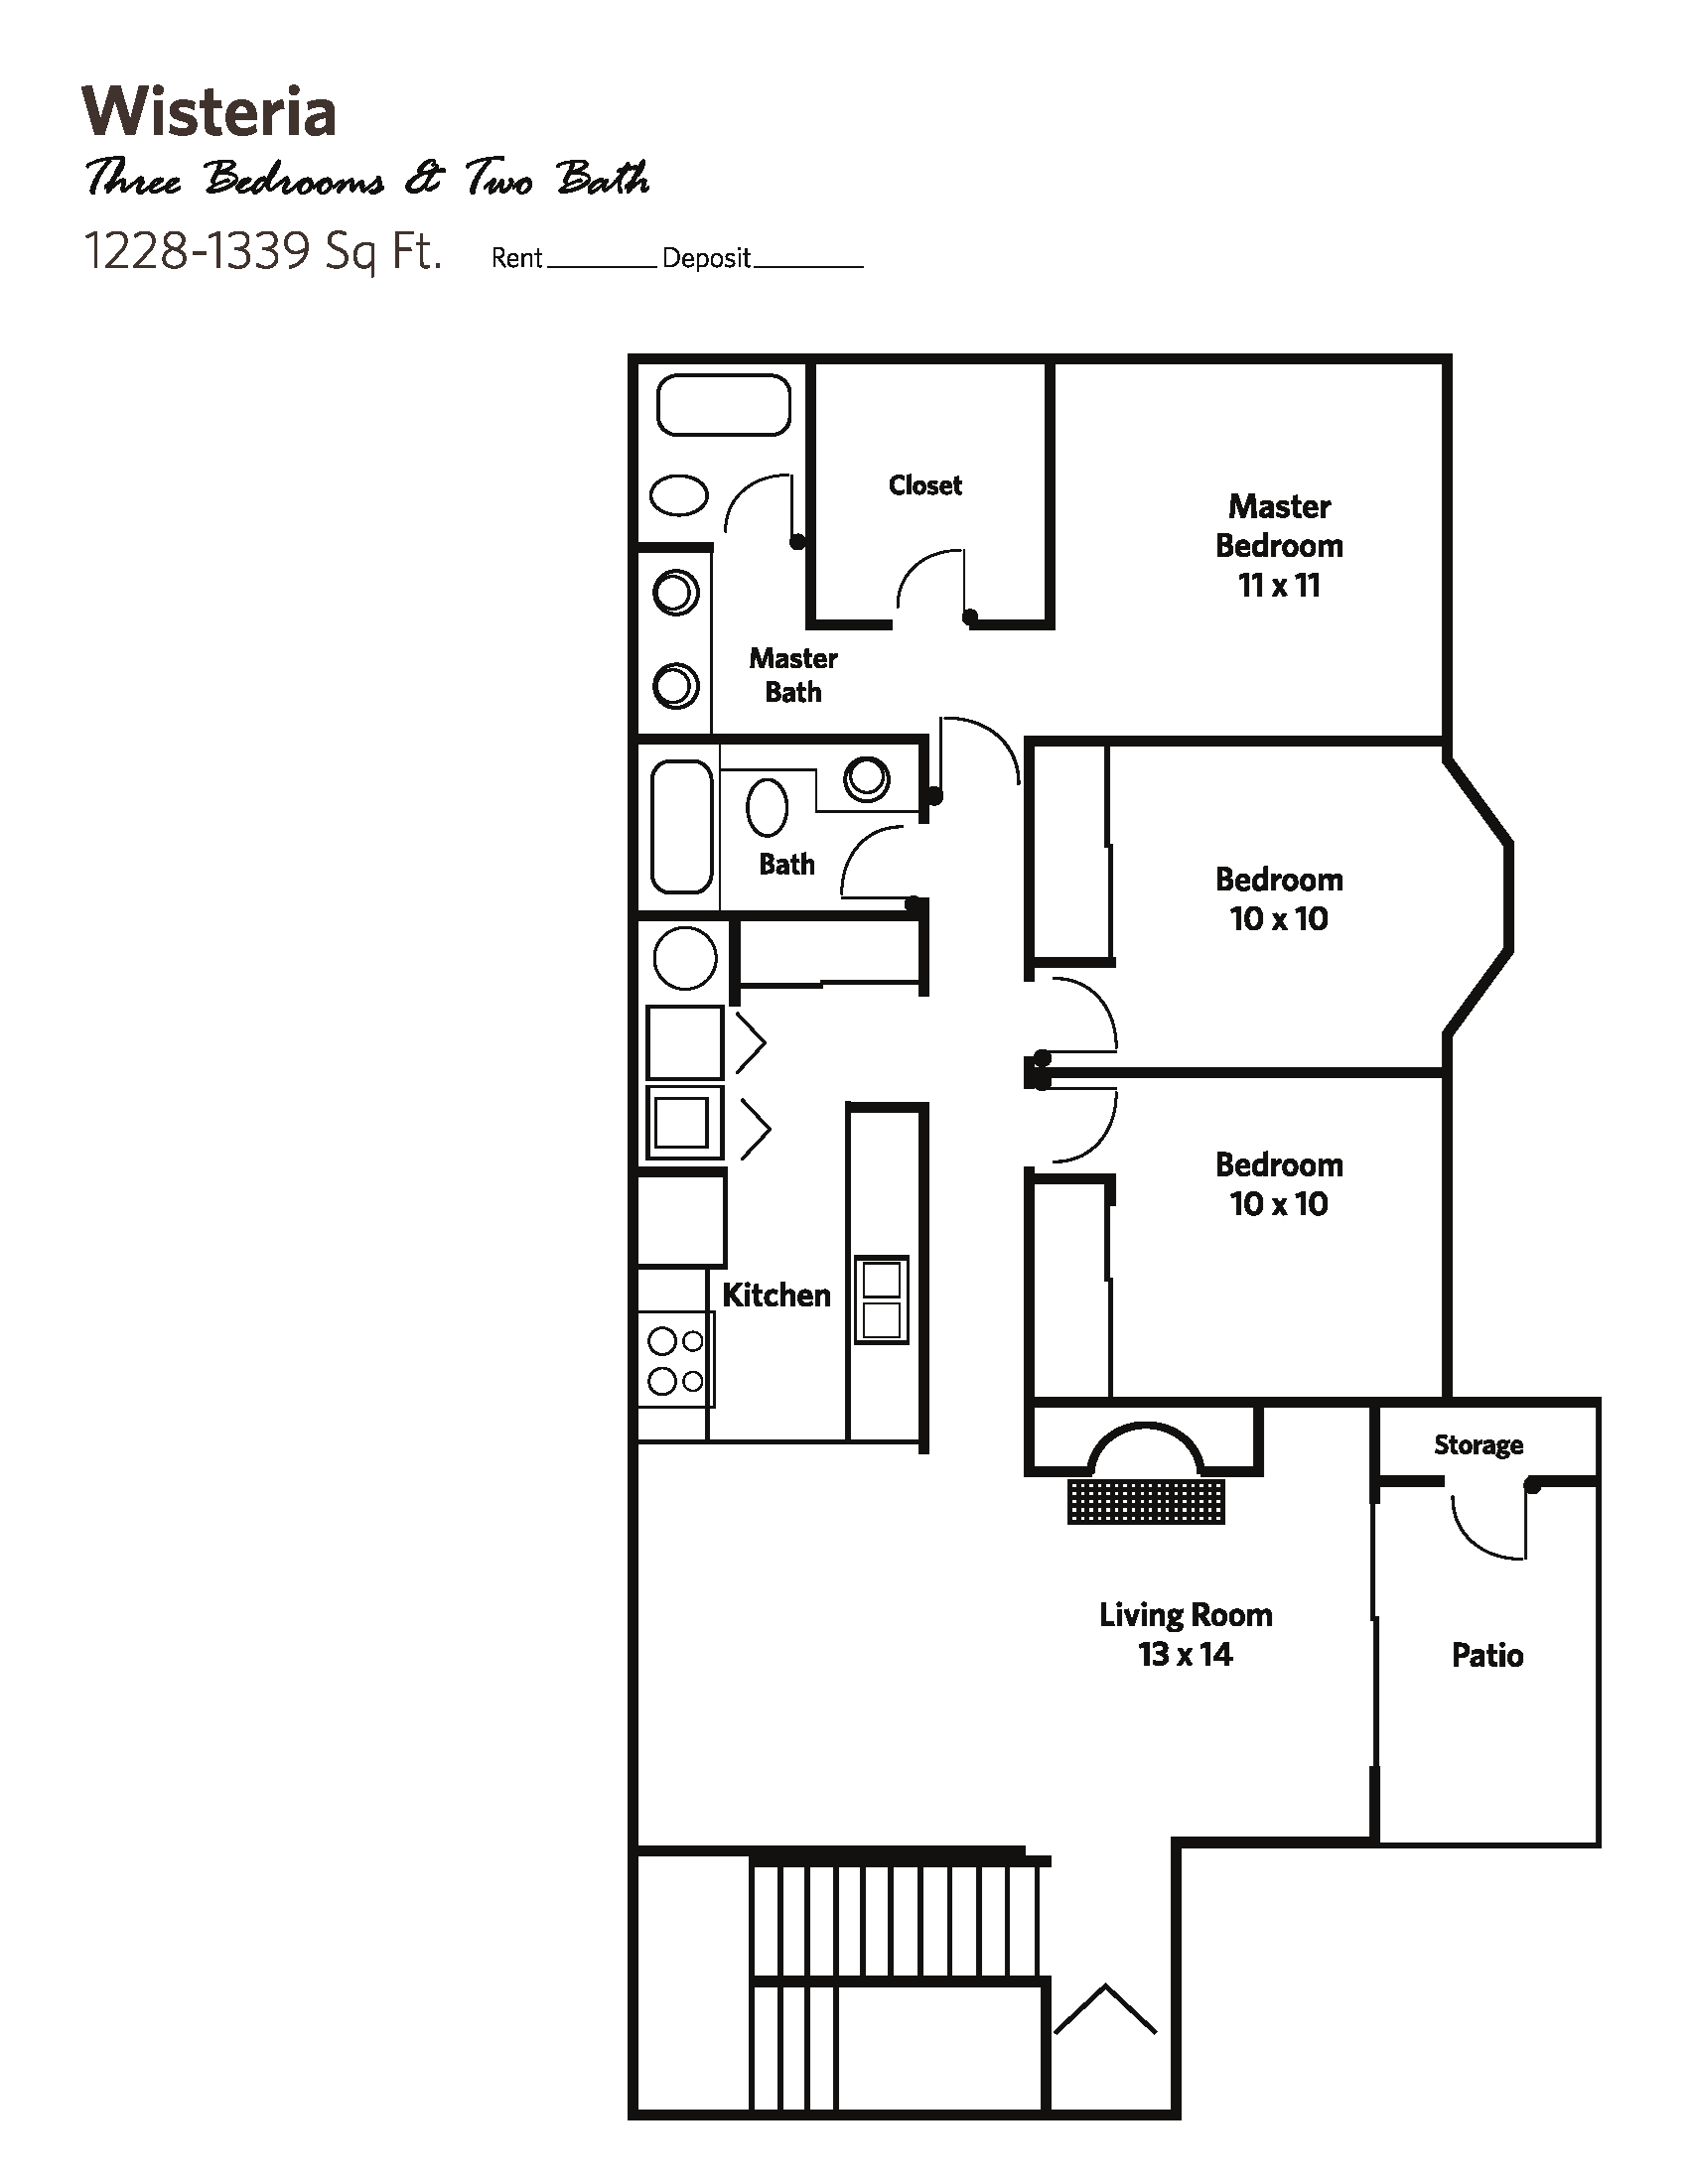 WISTERIA Large (3 bed + 2 bath) - Apartments Floor Plan 5